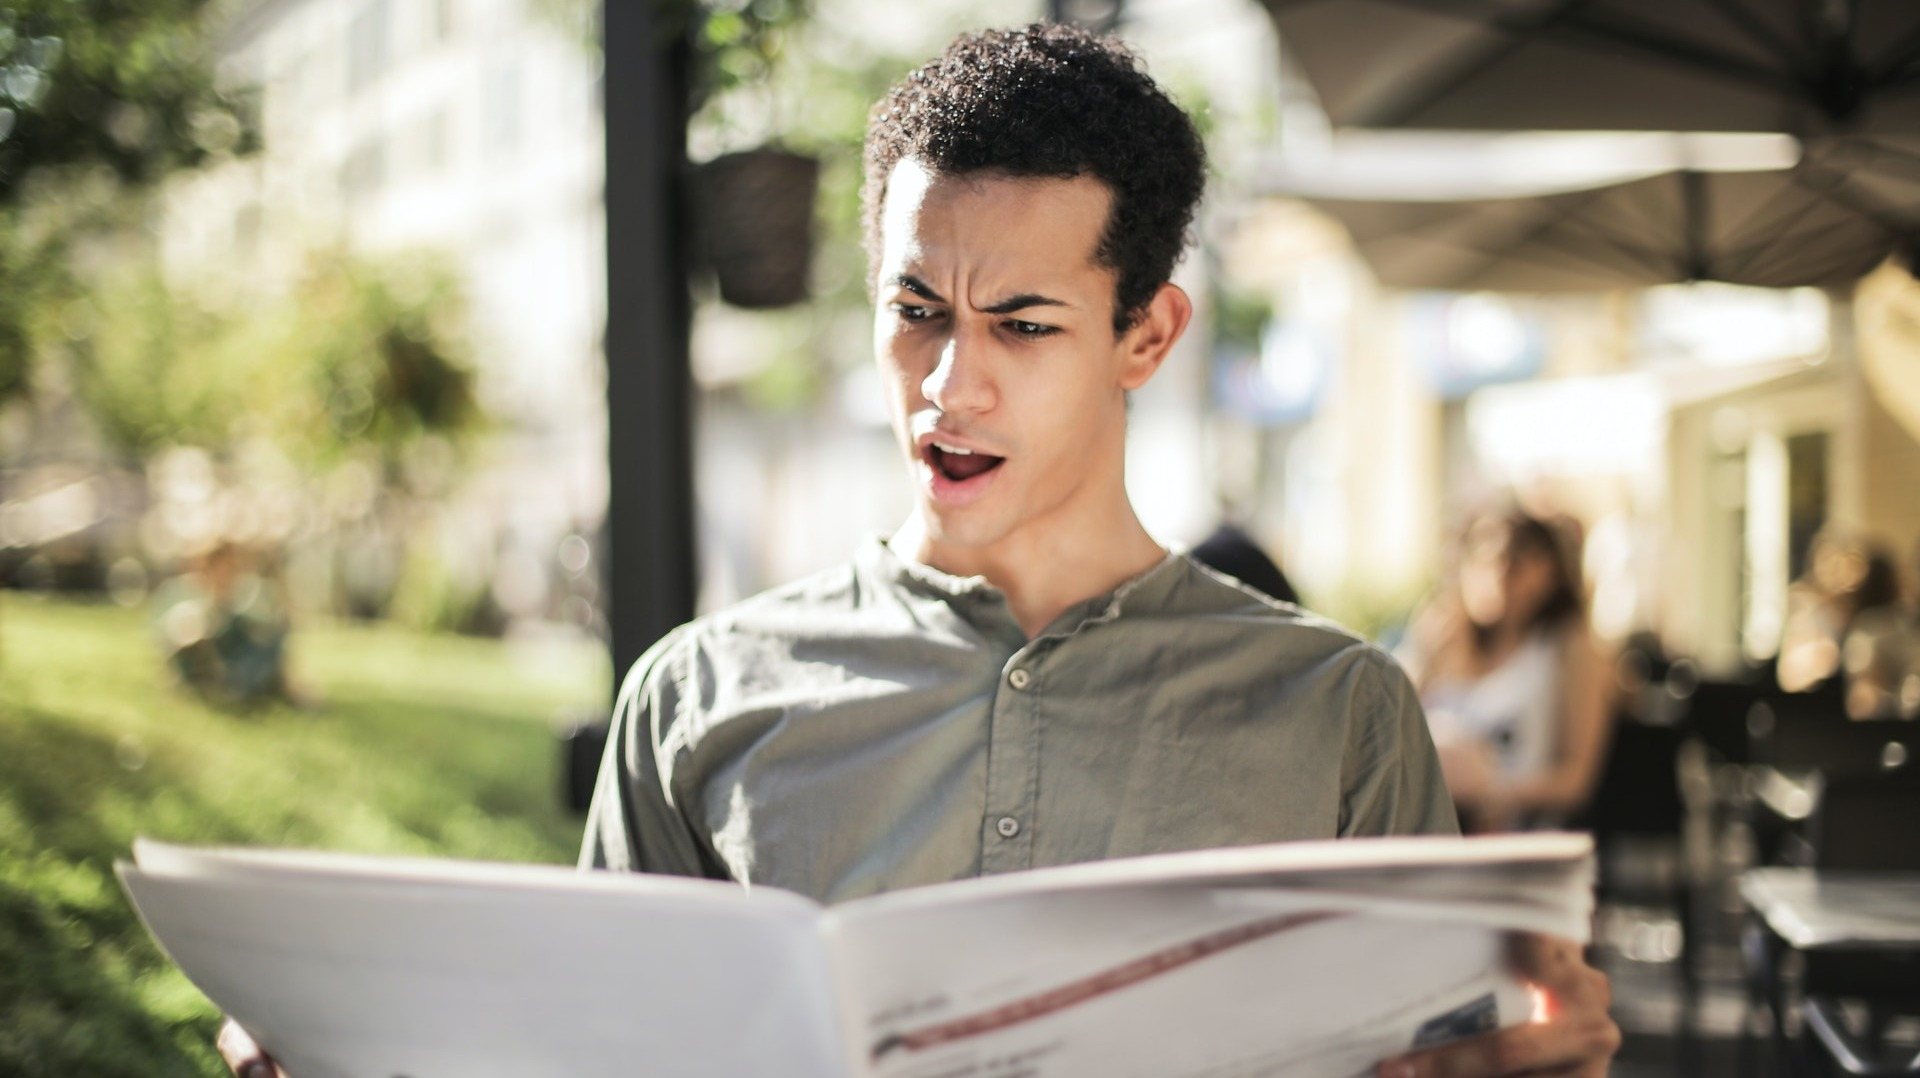 https://www.pexels.com/photo/selective-focus-photo-of-surprised-man-in-green-button-up-shirt-reading-newspaper-3765037/